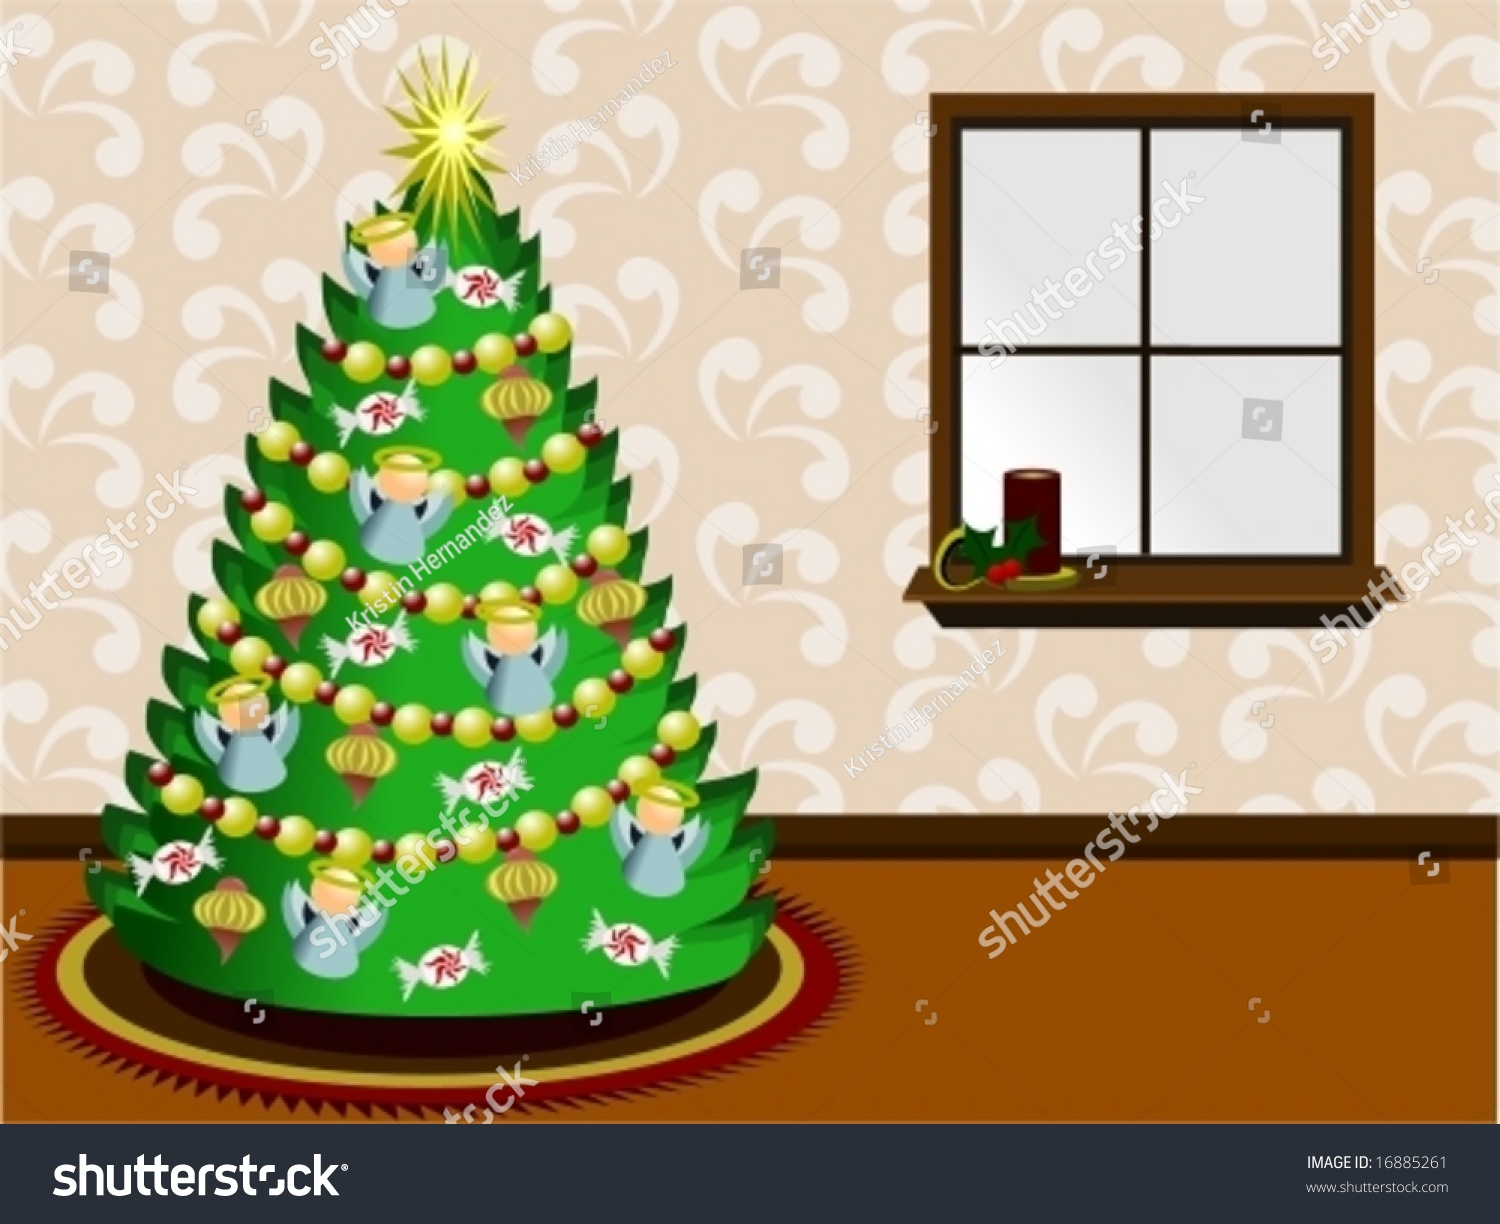 Victorian style christmas tree ornaments - Victorian Style Christmas Tree In A Living Room